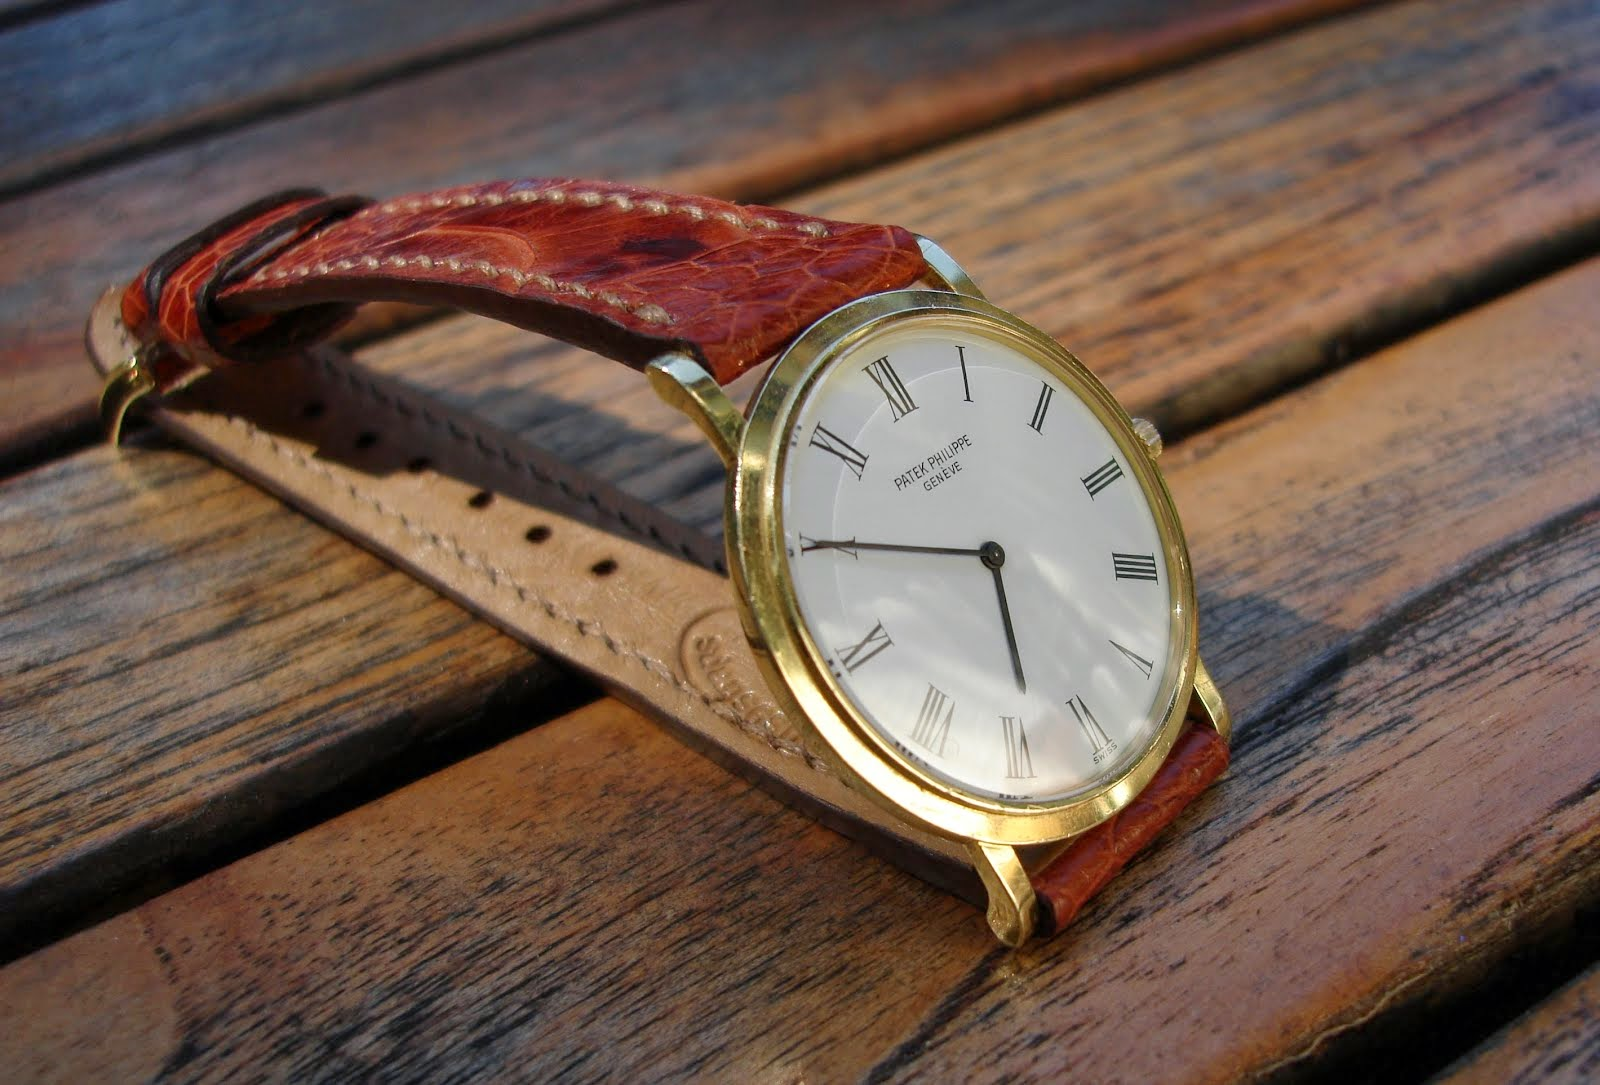 Vintage Patek Philip Calatrava on Cognac Ostrich Leg skin